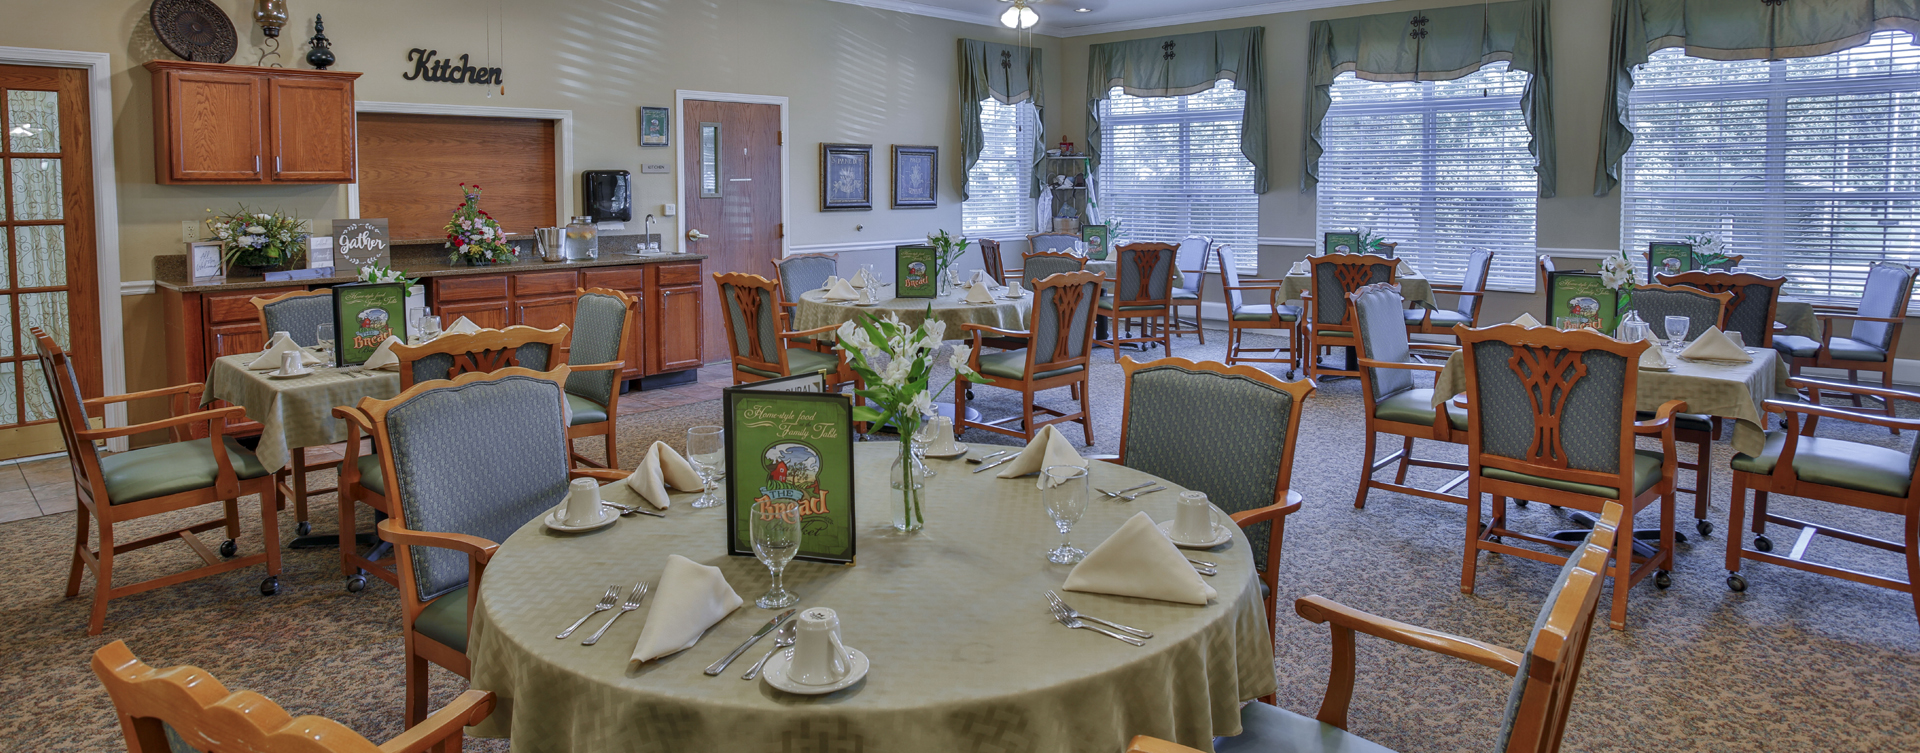 Enjoy homestyle food with made-from-scratch recipes in our dining room at Bickford of Crawfordsville